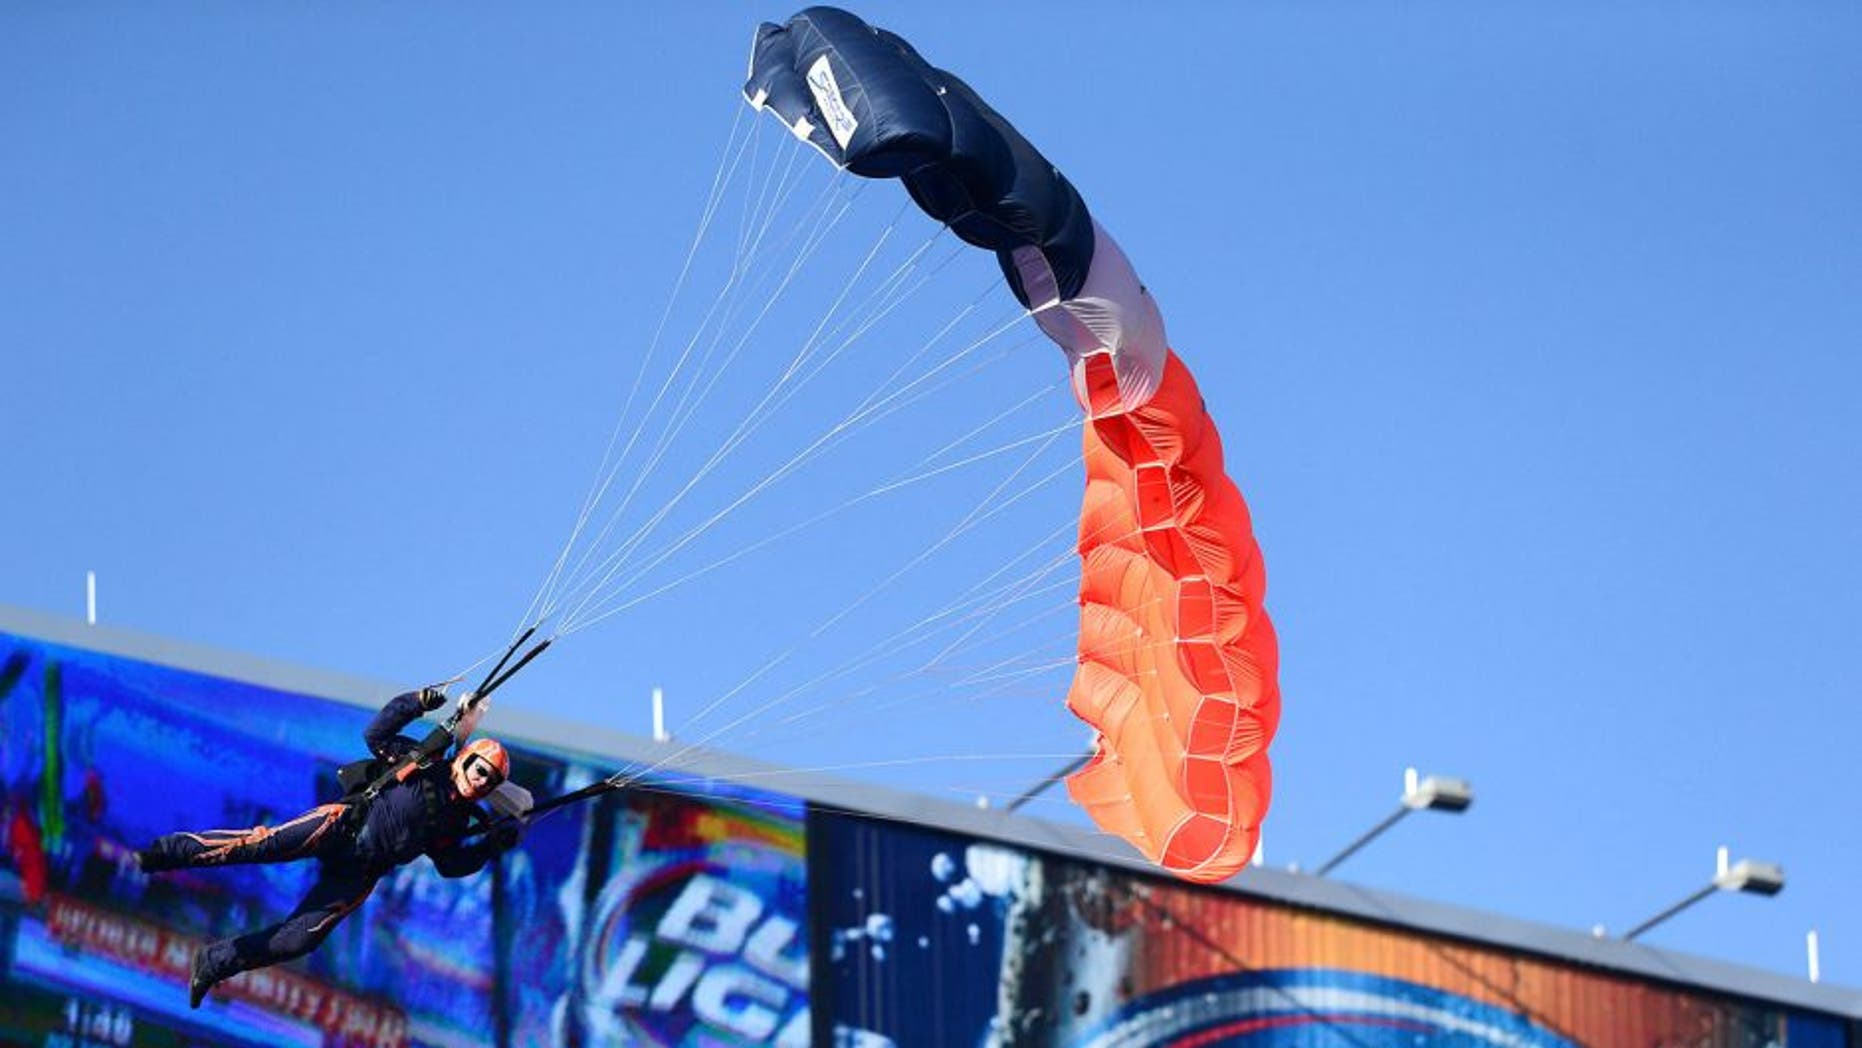 Dec 8, 2013; Denver, CO, USA; General view of a sky diver performer coming into Sports Authority Field at Mile High.before the game Tennessee Titans against the Denver Broncos. Mandatory Credit: Ron Chenoy-USA TODAY Sports